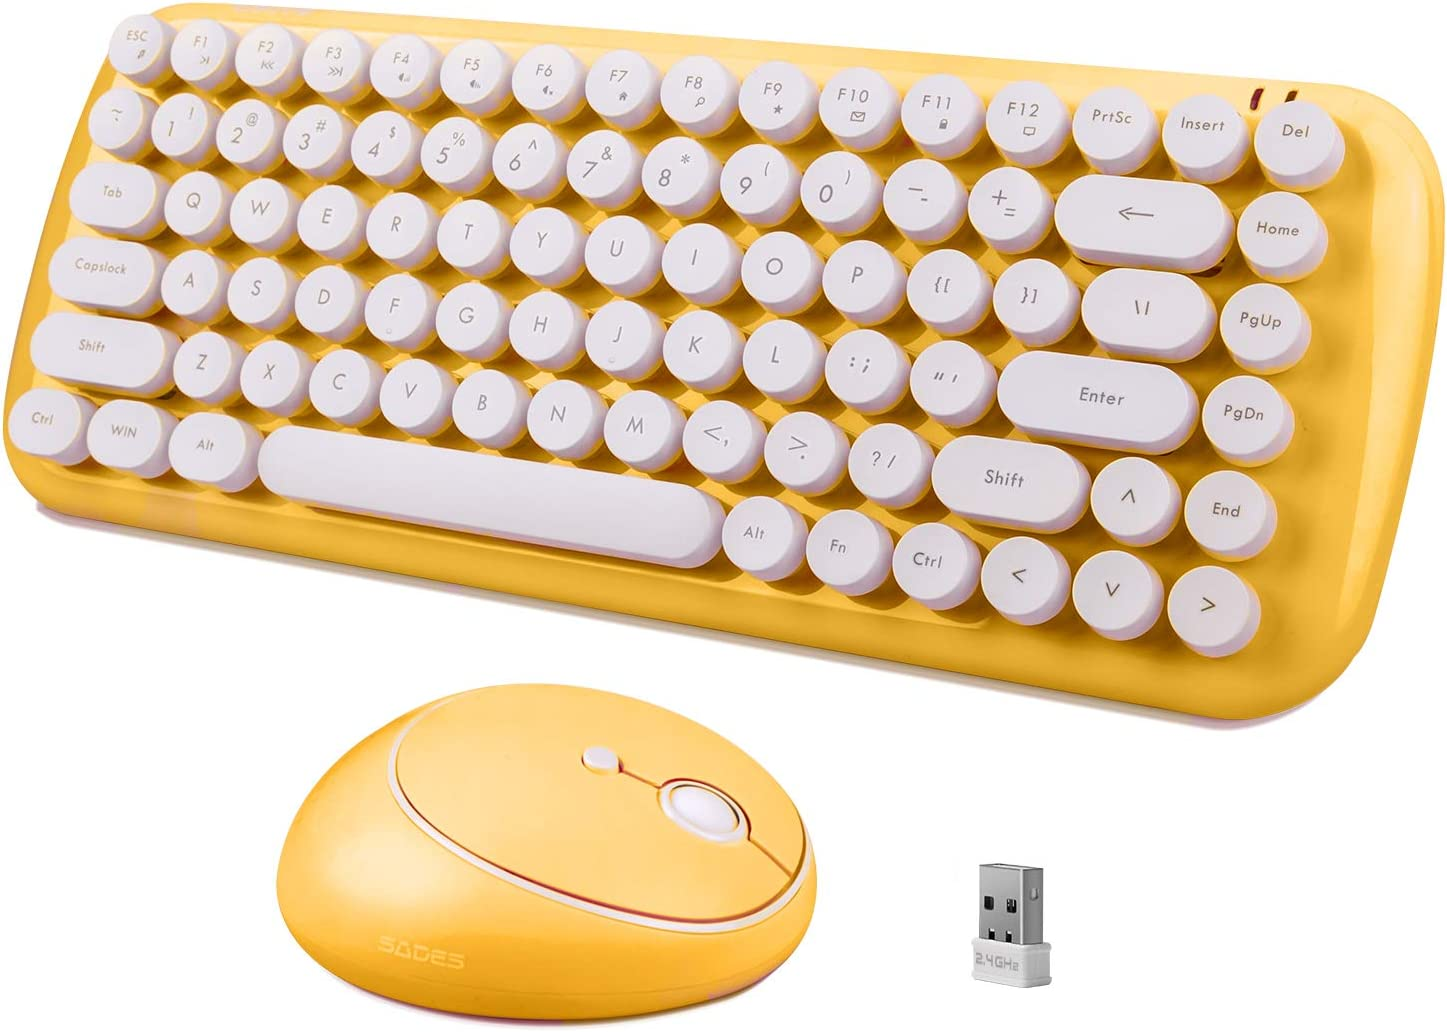 Wireless Keyboard Mouse Combo, Keyboard and Mouse for Girl and Child, 84 Keys and Optical Wireless Gaming Mouse with 3 Adjustable DPI, Compatible with PC, Computer, Laptop, Desktop, Charm Yellow